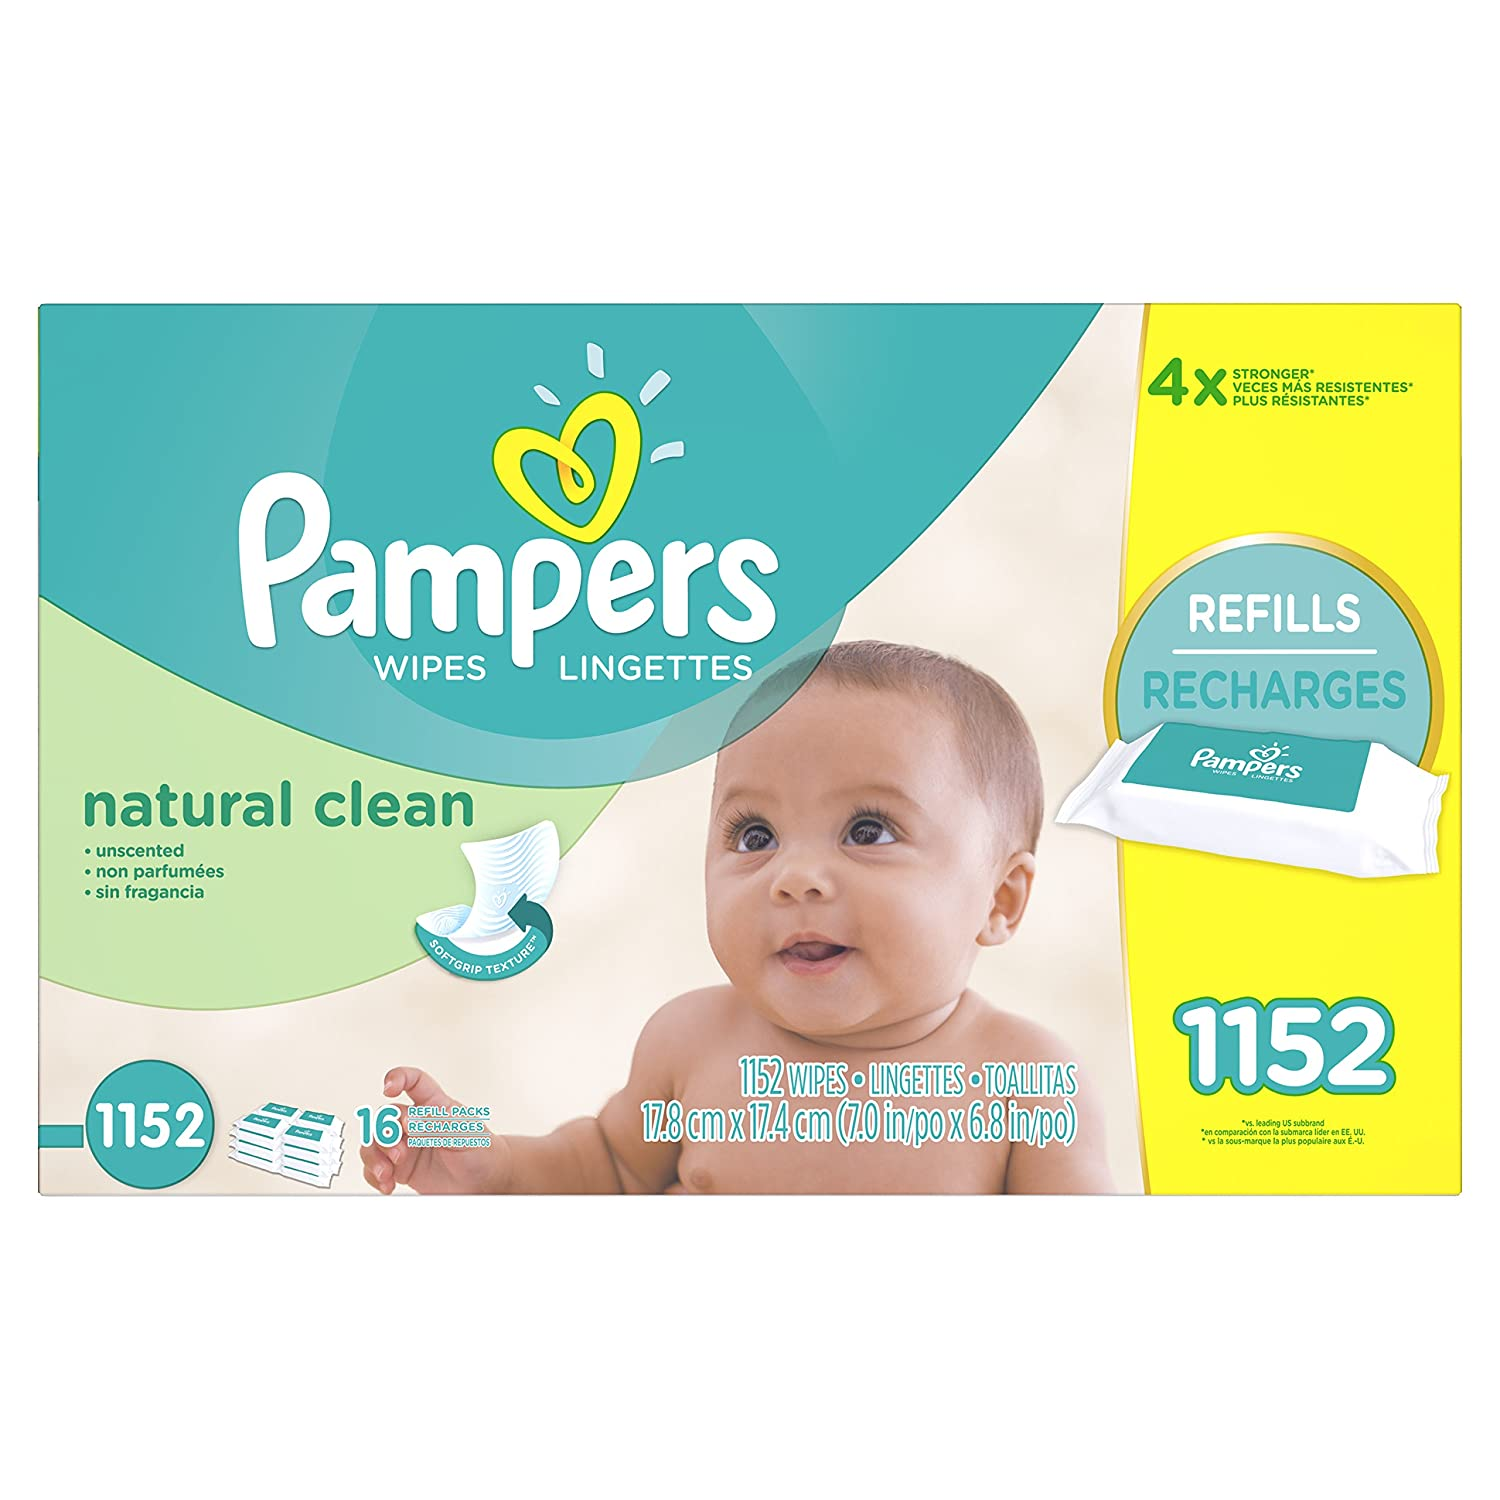 Pampers Baby Wipes, Natural Clean UNSCENTED 16X Refill Packs, 1152 Count (Packaging May Vary) Procter and Gamble